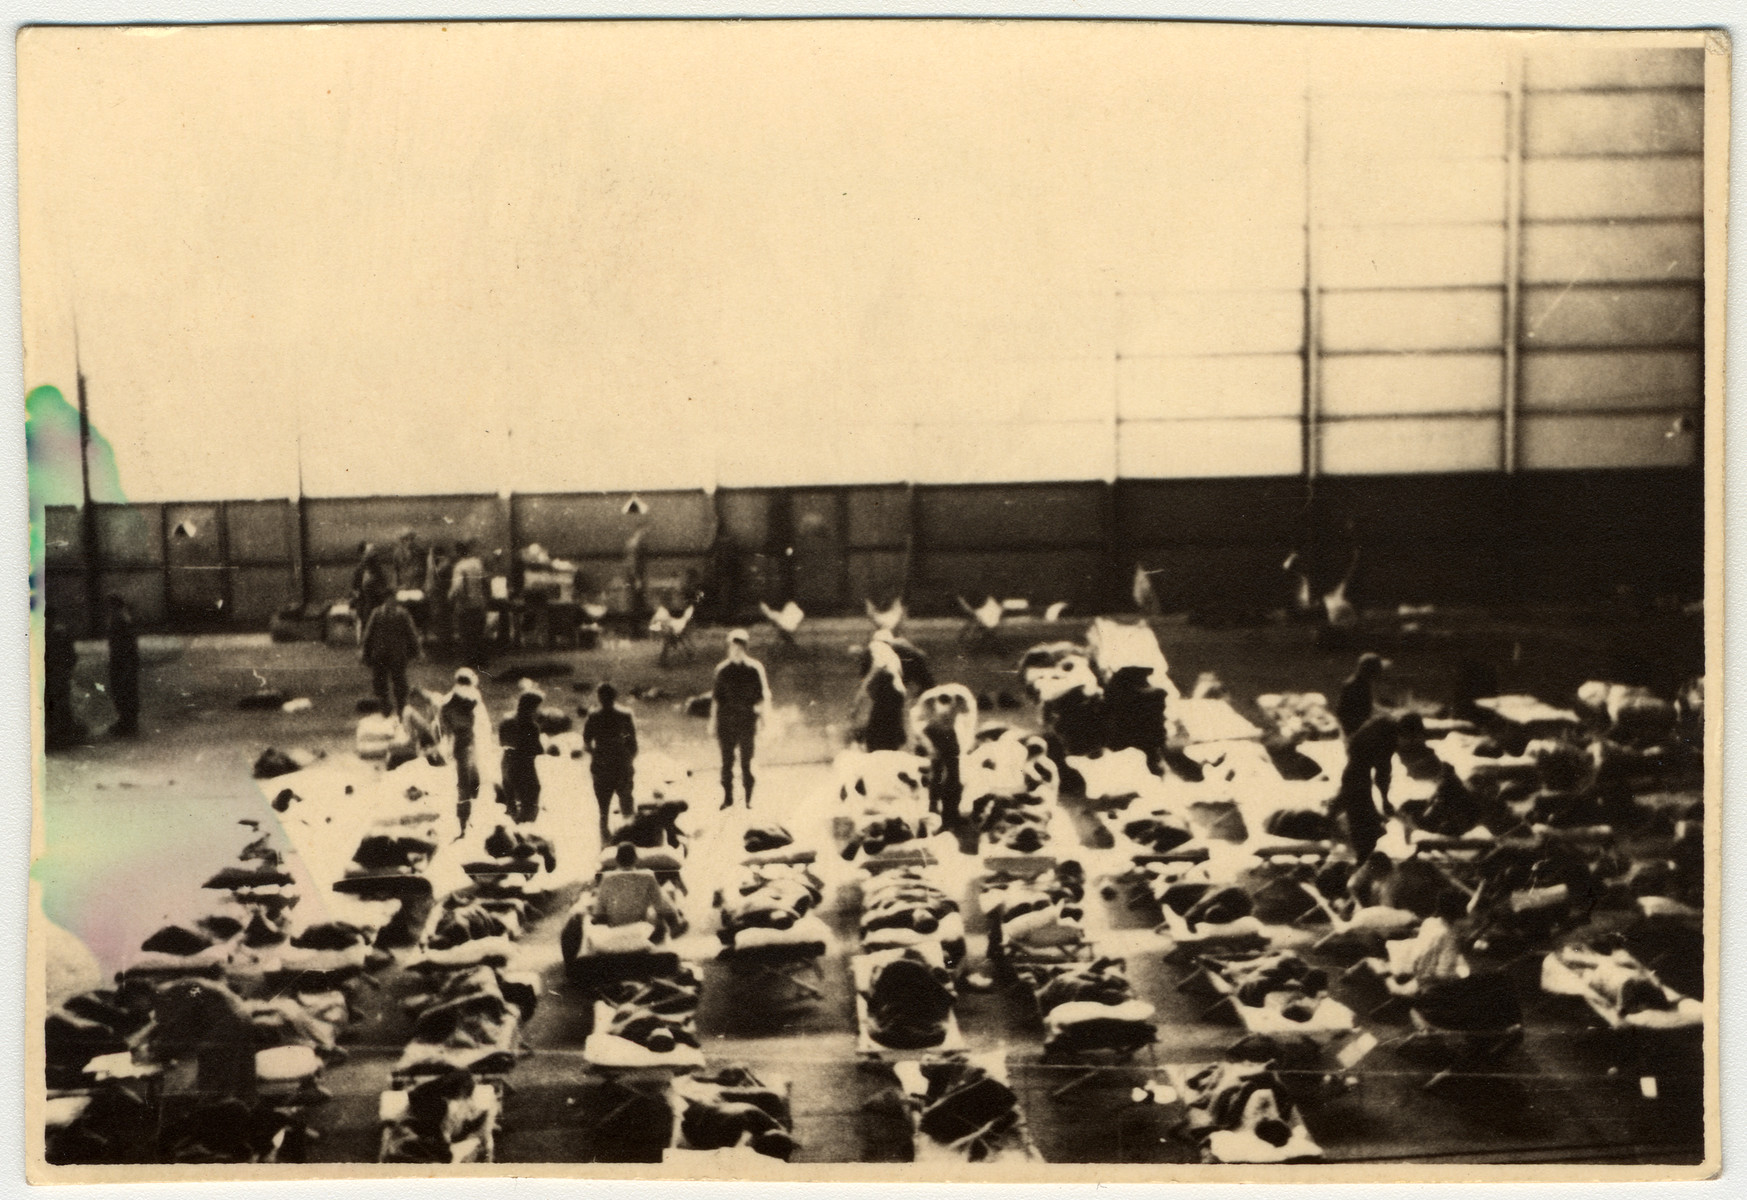 Survivors lay in cots in the interior of an airplane hanger that was used as an infirmary for concentration camp survivors.